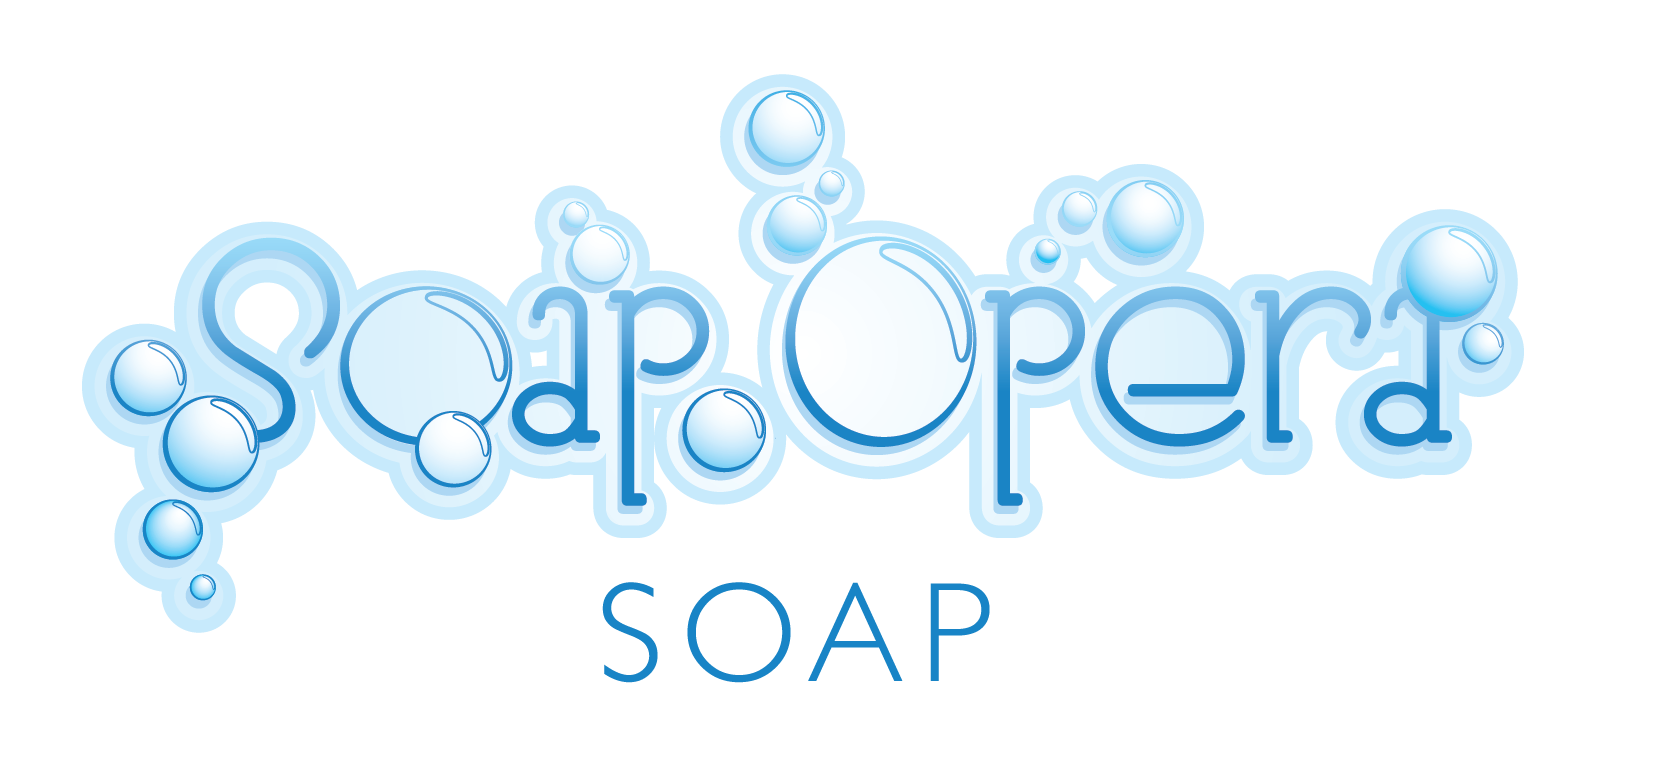 essays on soap operas Exploratory essay on why soap operas are so popular type of paper: essays subject: entertainment & sport words: 293.